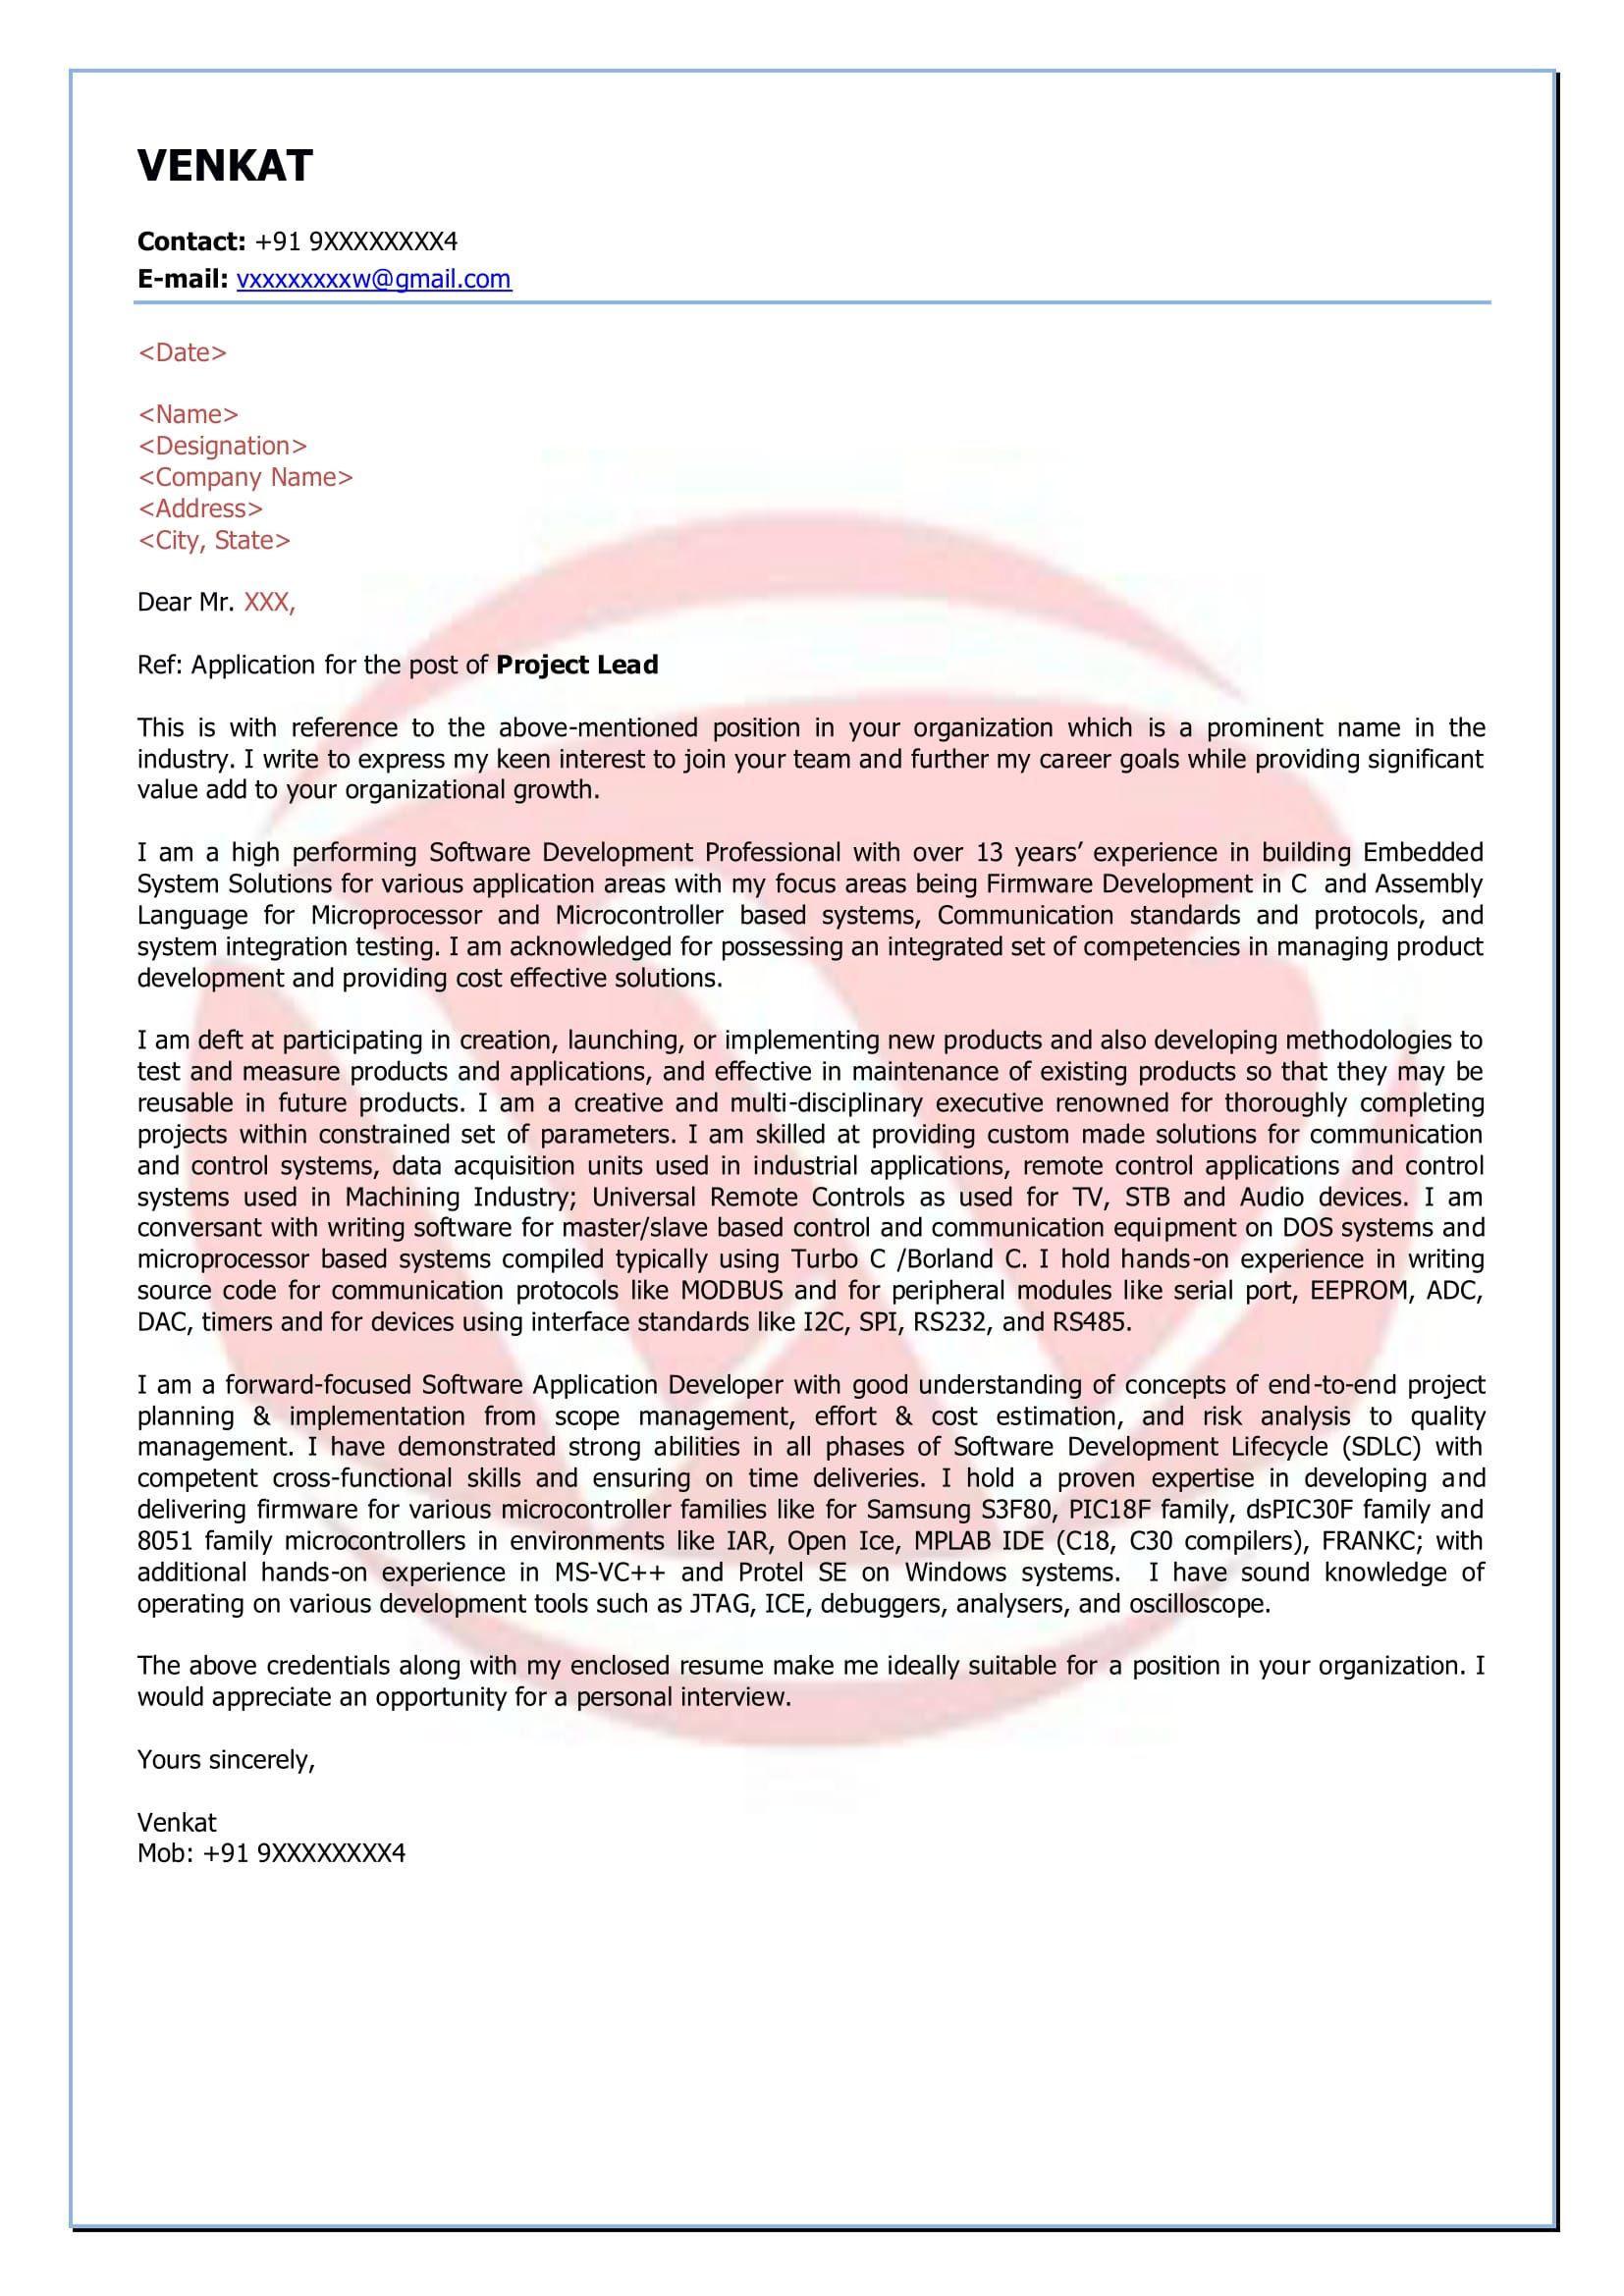 software engineer sample cover letter format, download cover ...